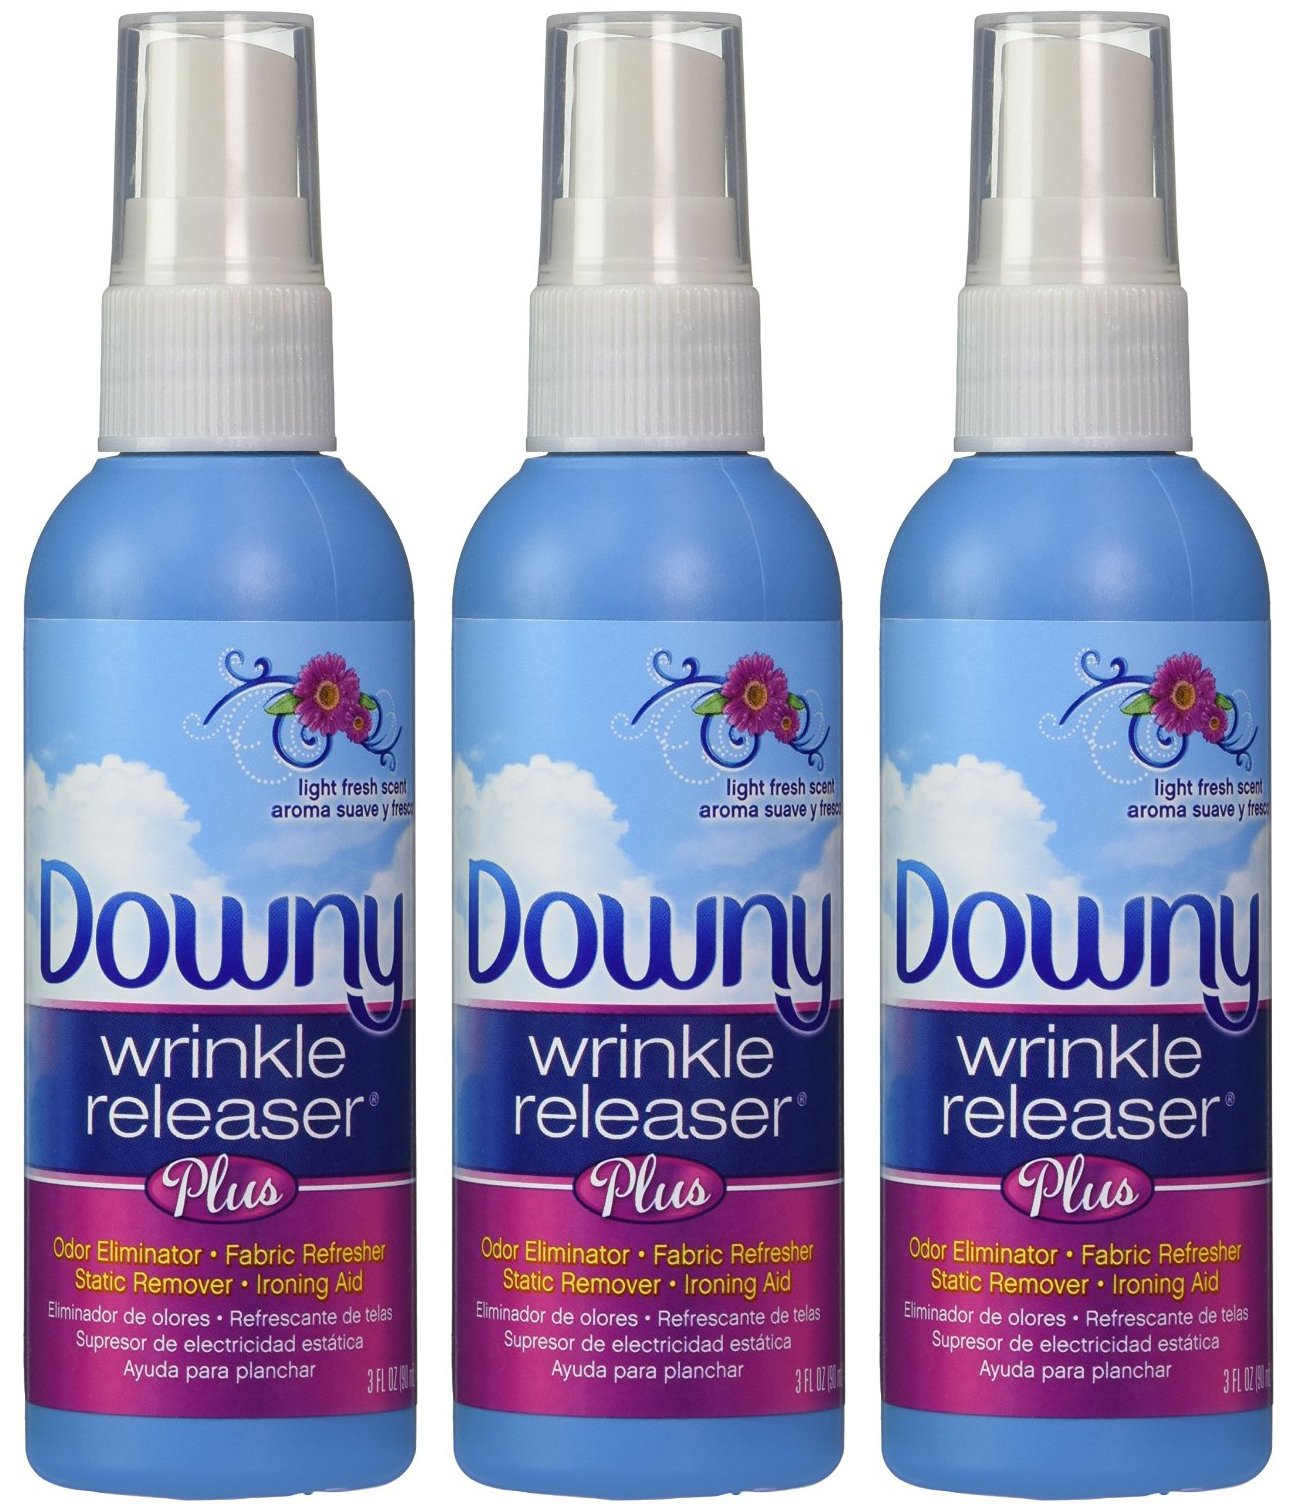 Downy Wrinkle Releaser, Travel Size Light Fresh Scent 3 fl oz - 3 Pack